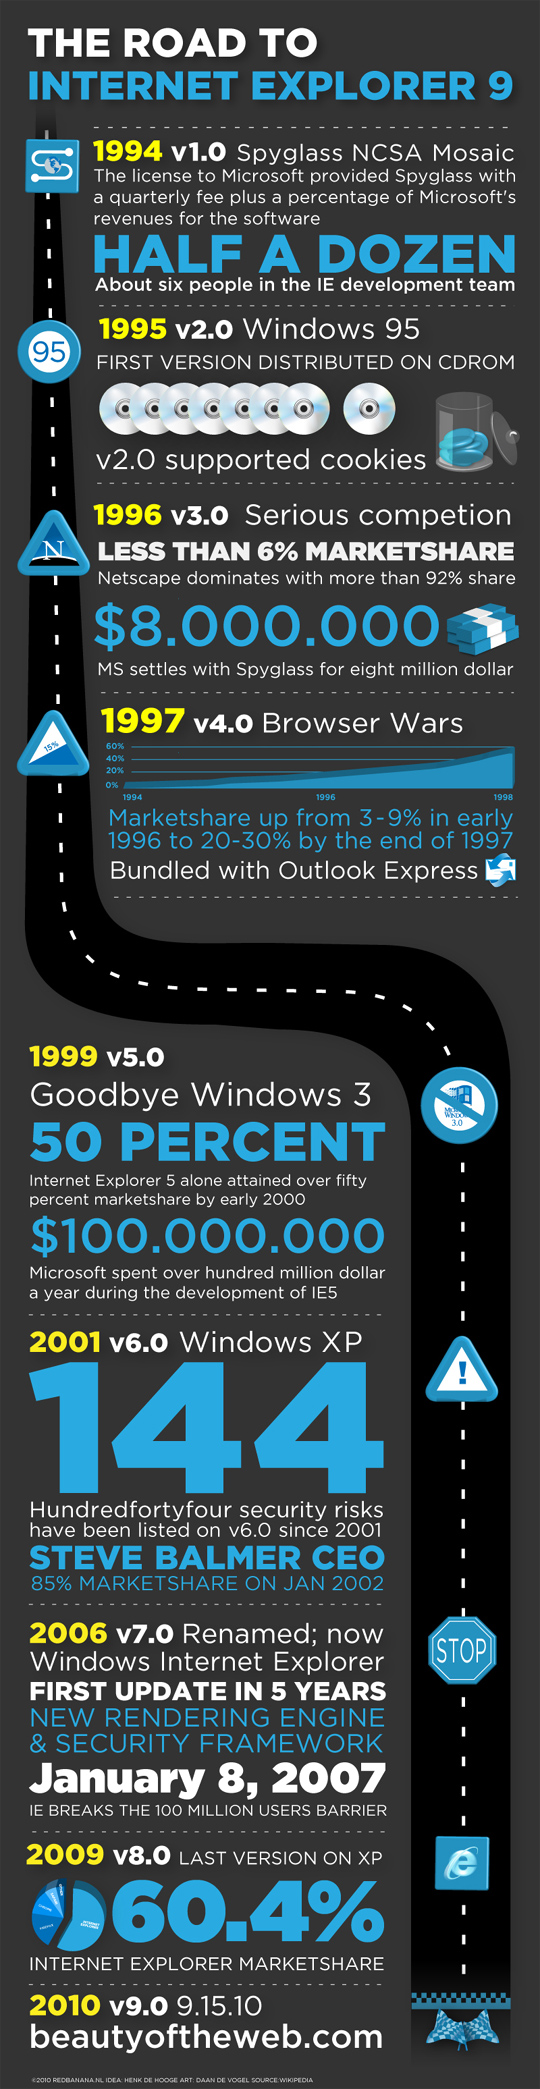 The Road To Internet Explorer 9 (Infographic) 5